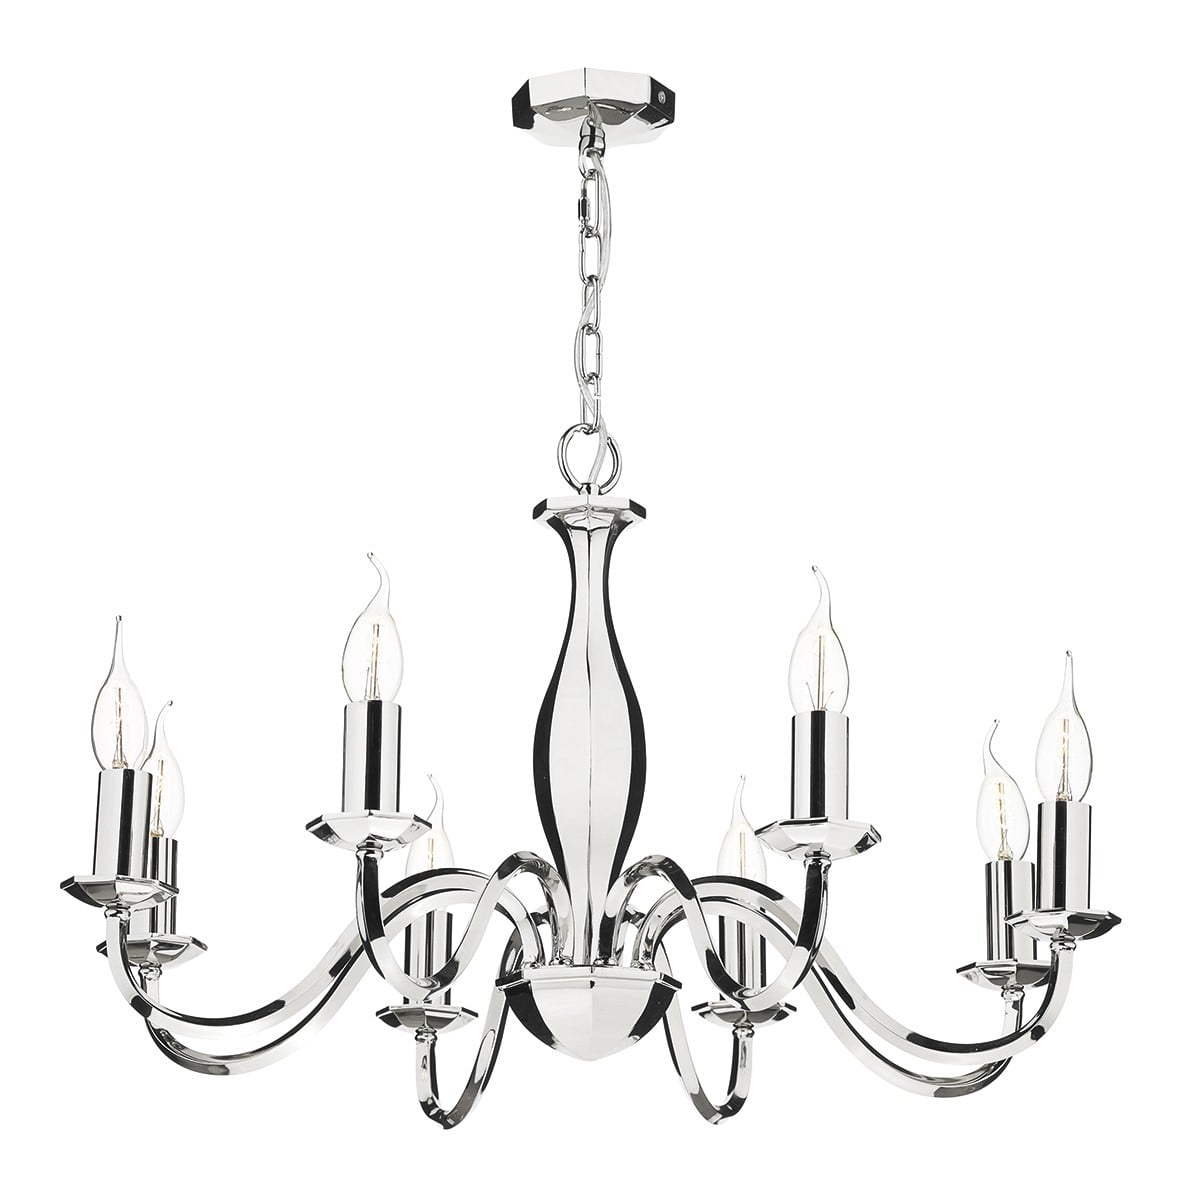 Dar ATH0838 Athol 8 Light Pendant in Polished Nickel Finish